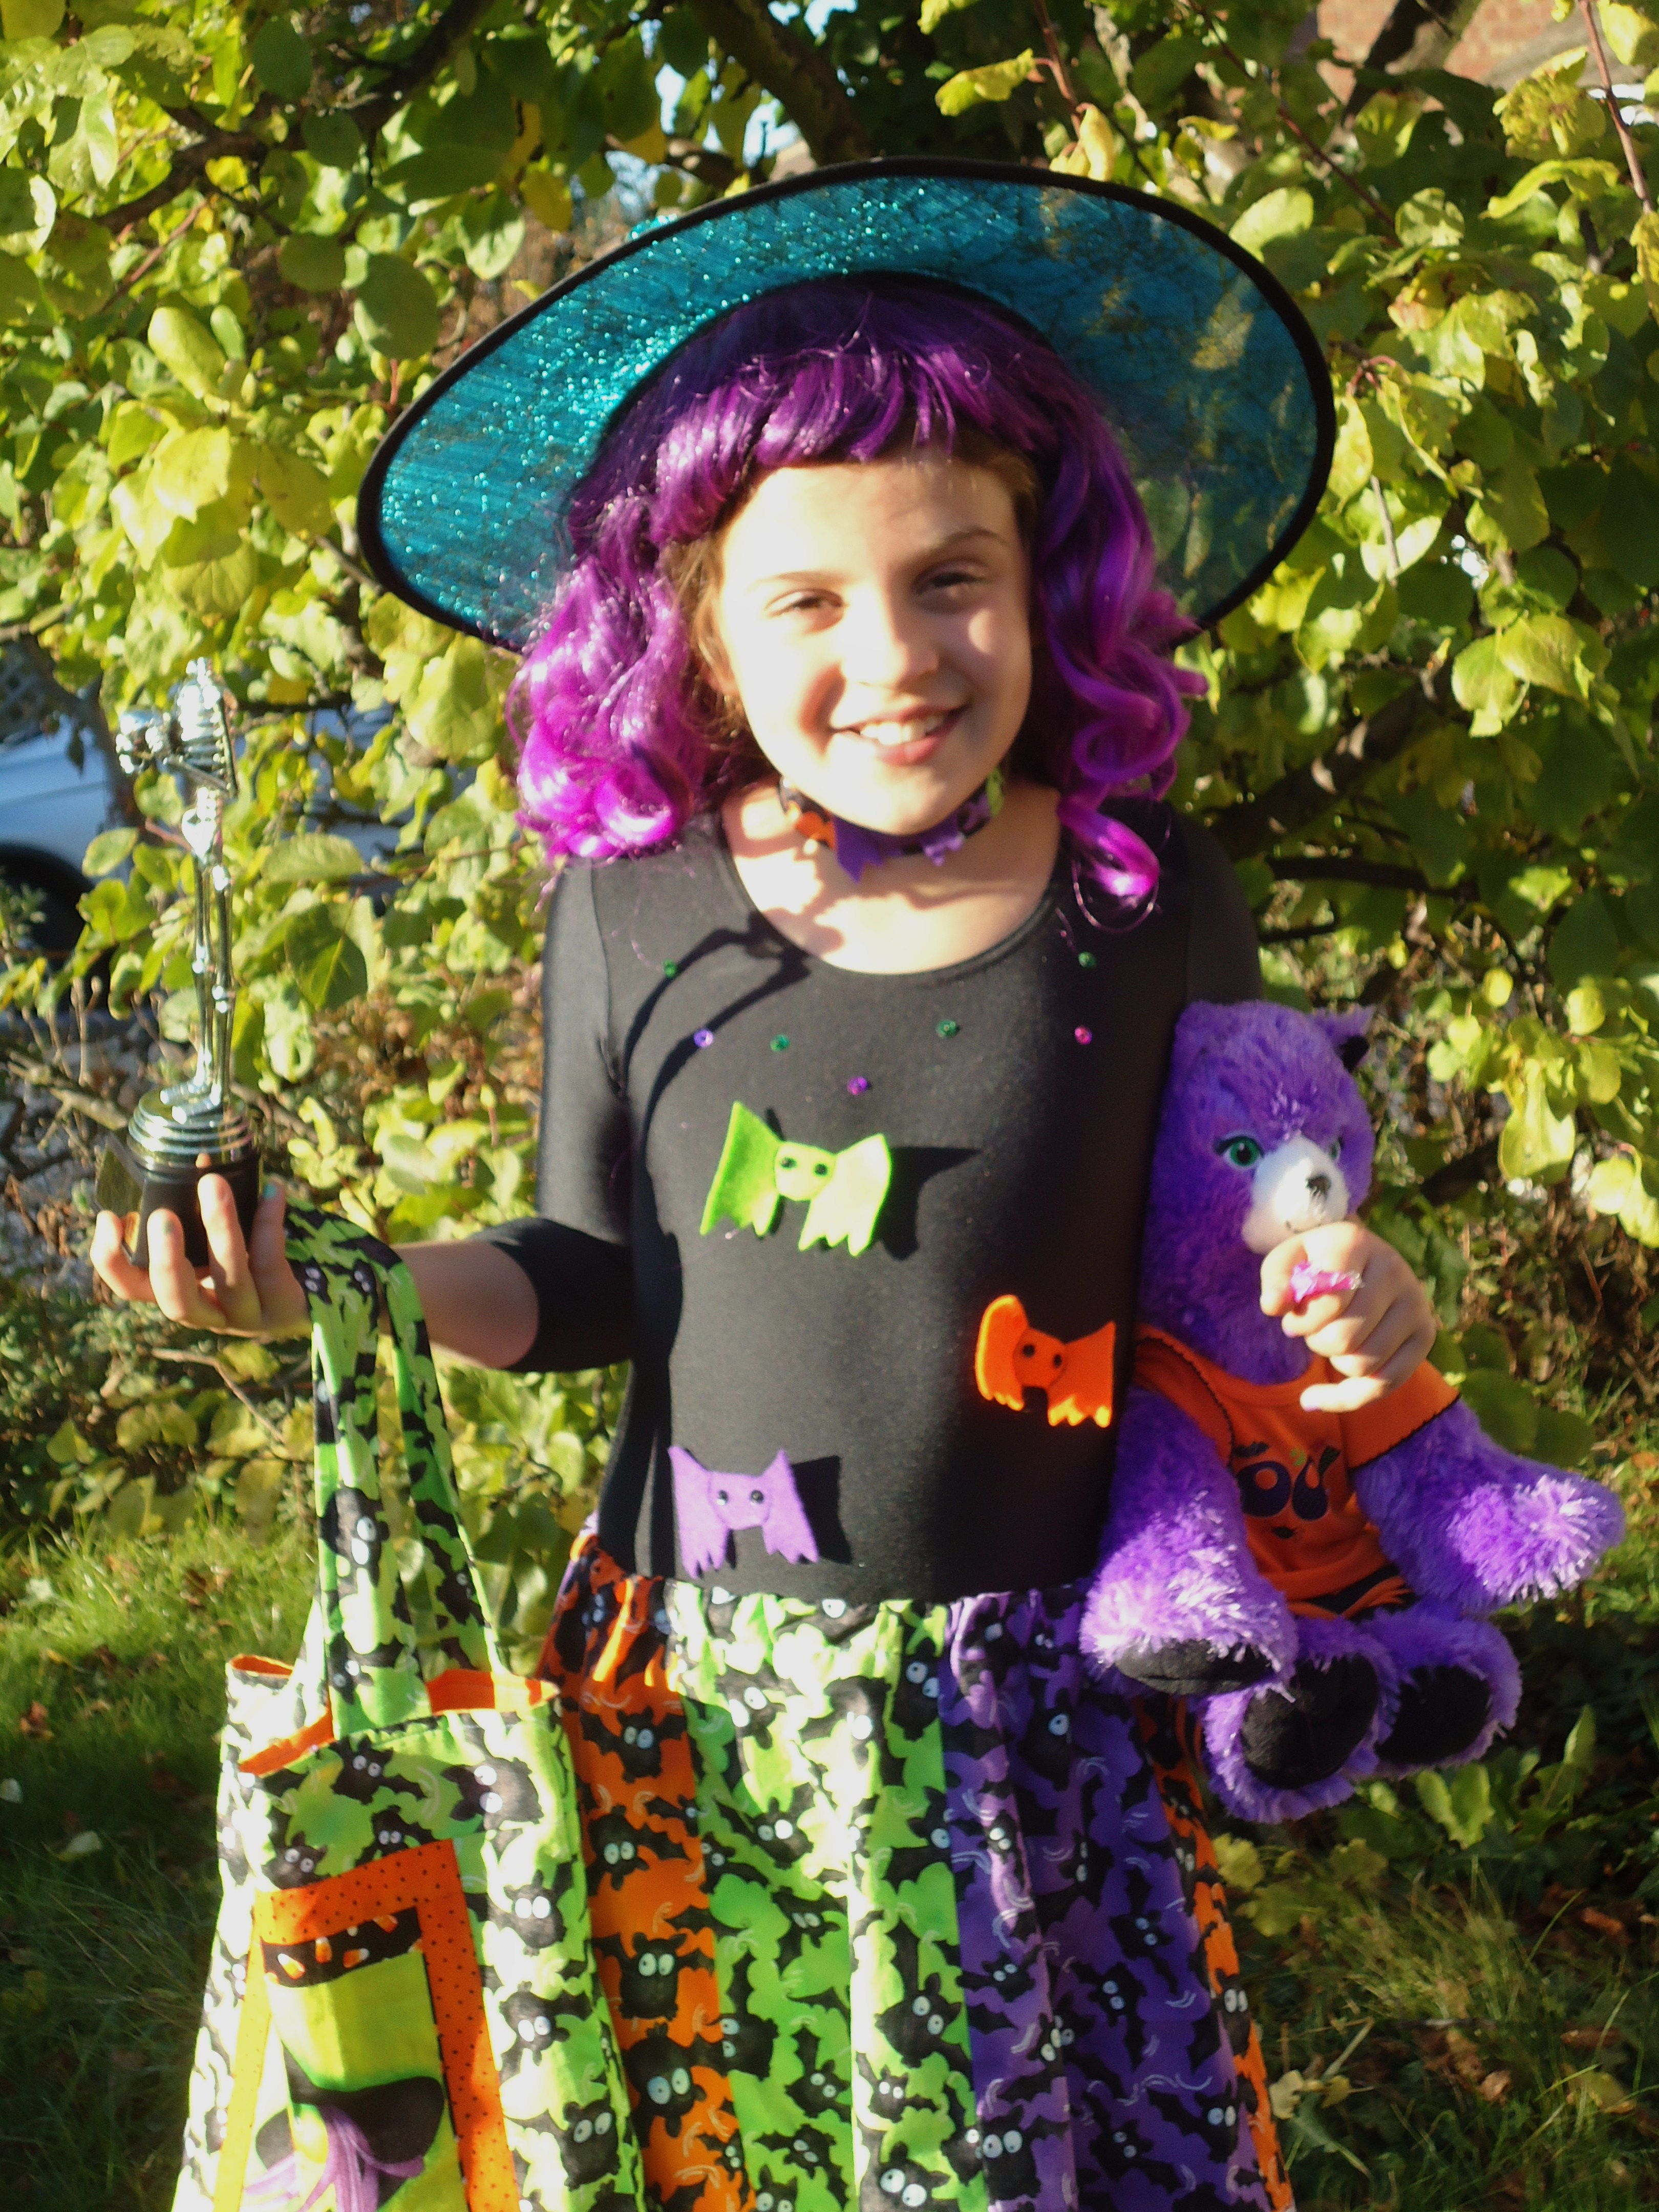 25Oct2010 - Bat witch with her prize